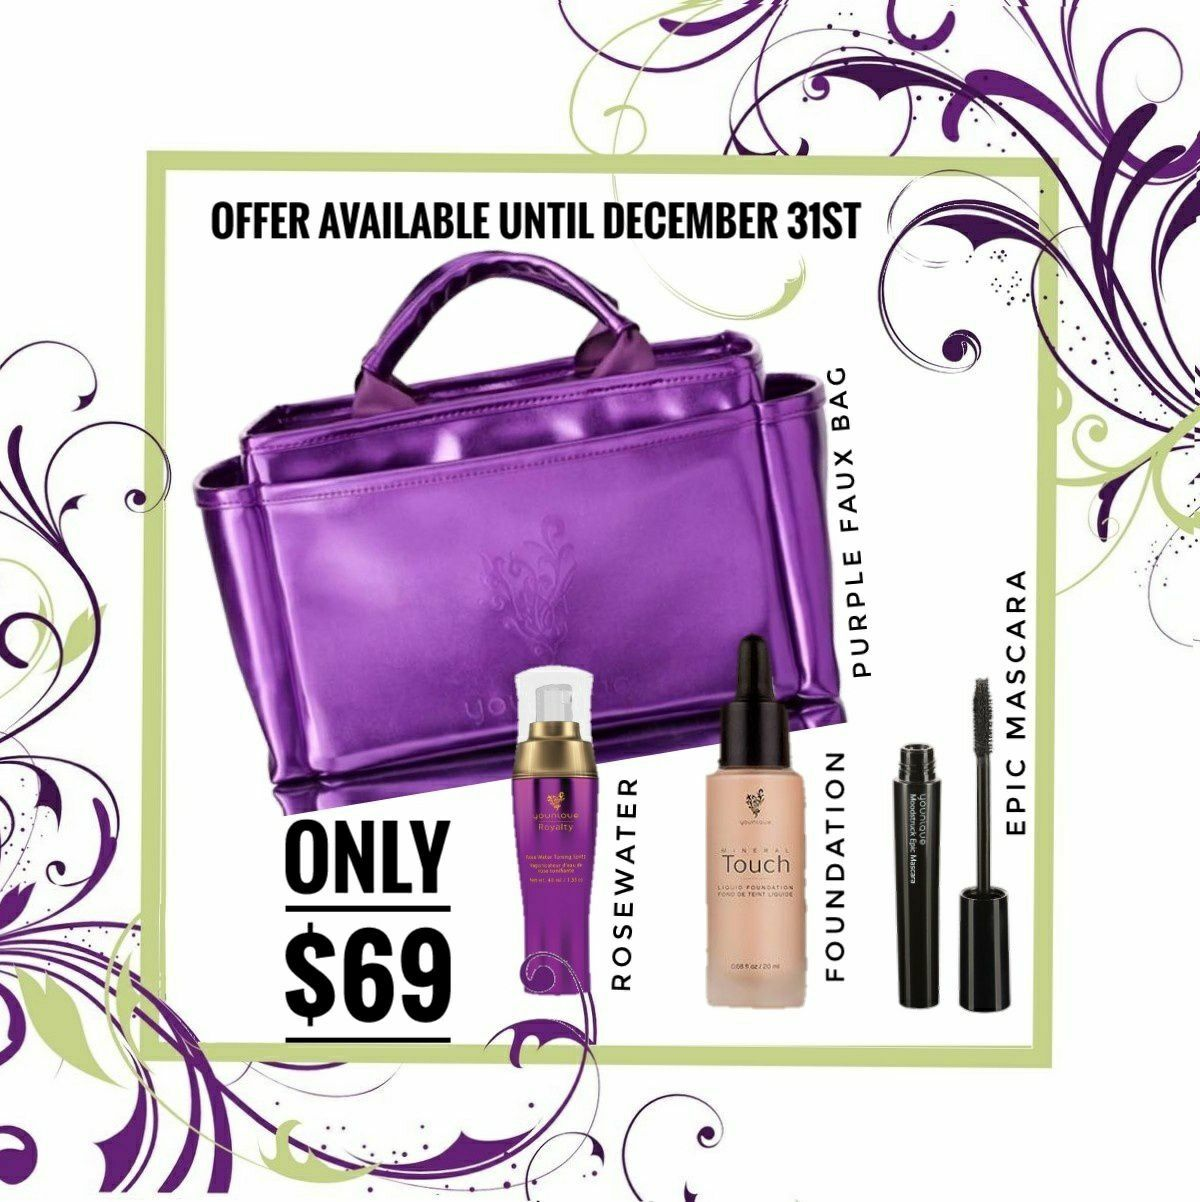 Pin by Tara Kemp on Younique Leather makeup bag, Purple